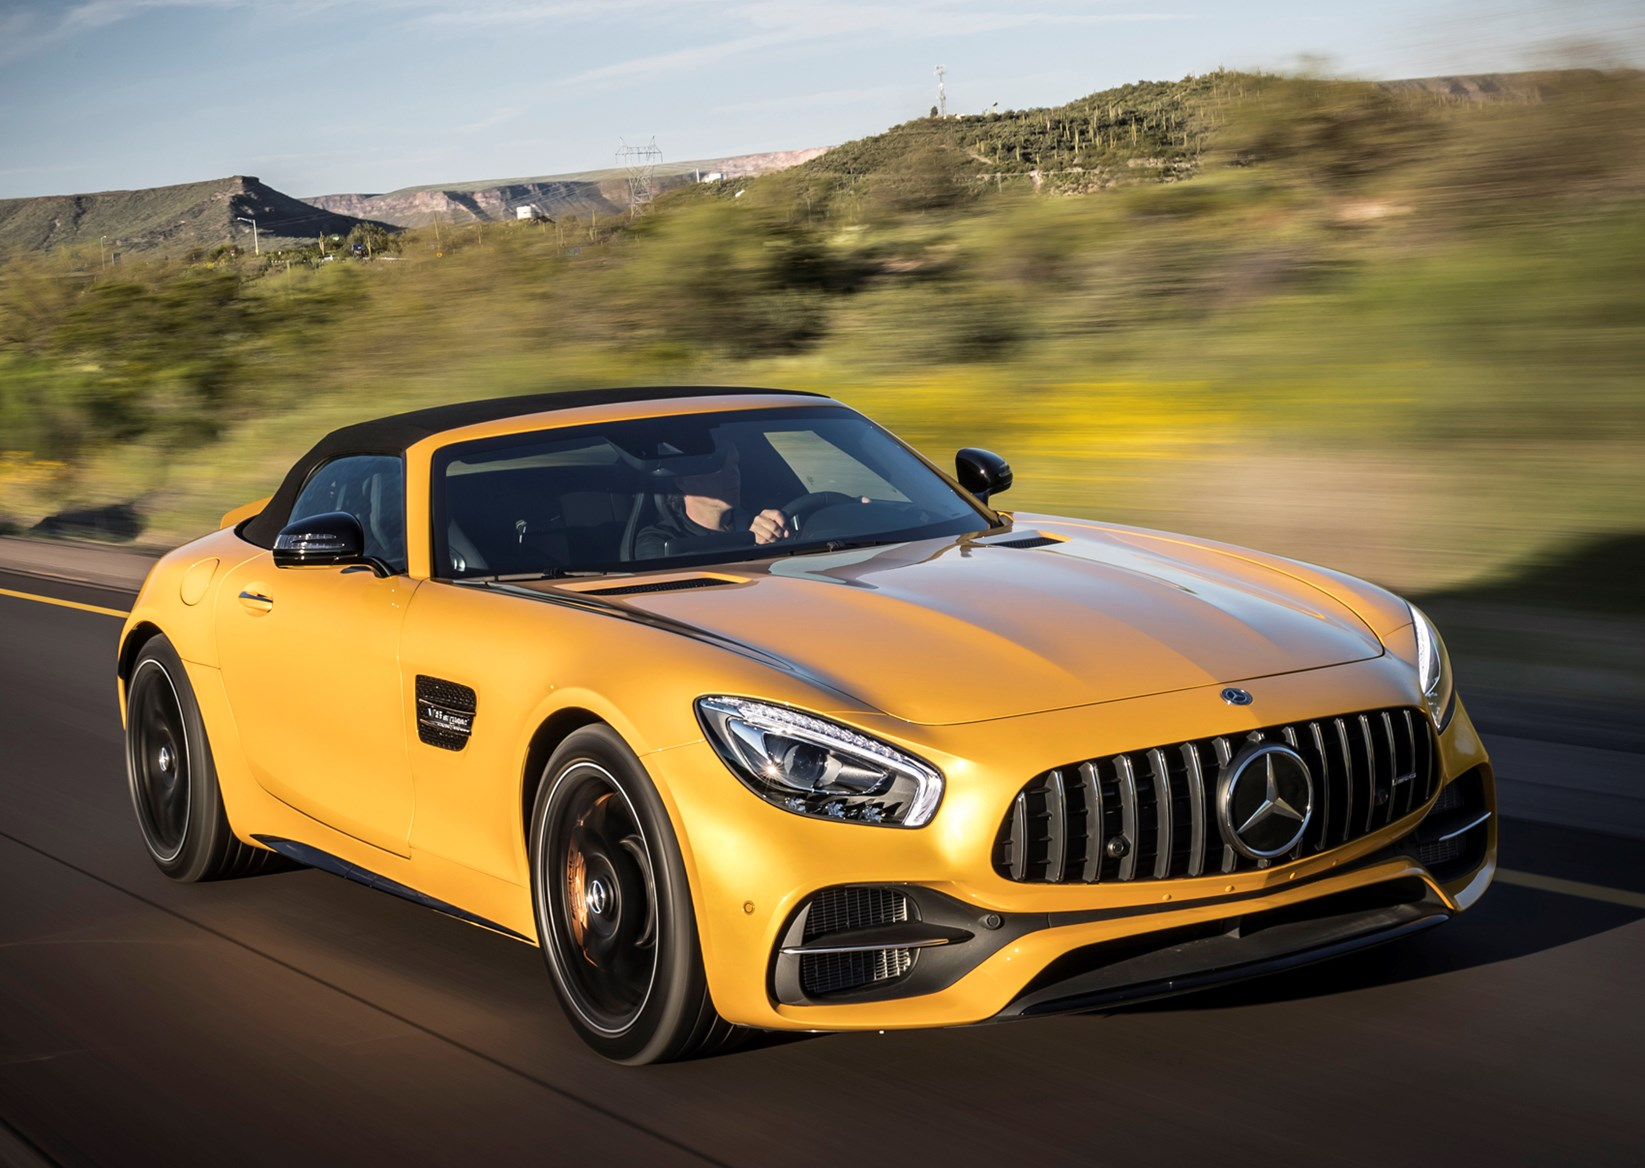 mercedes benz amg gt roadster review 2019 parkers. Black Bedroom Furniture Sets. Home Design Ideas